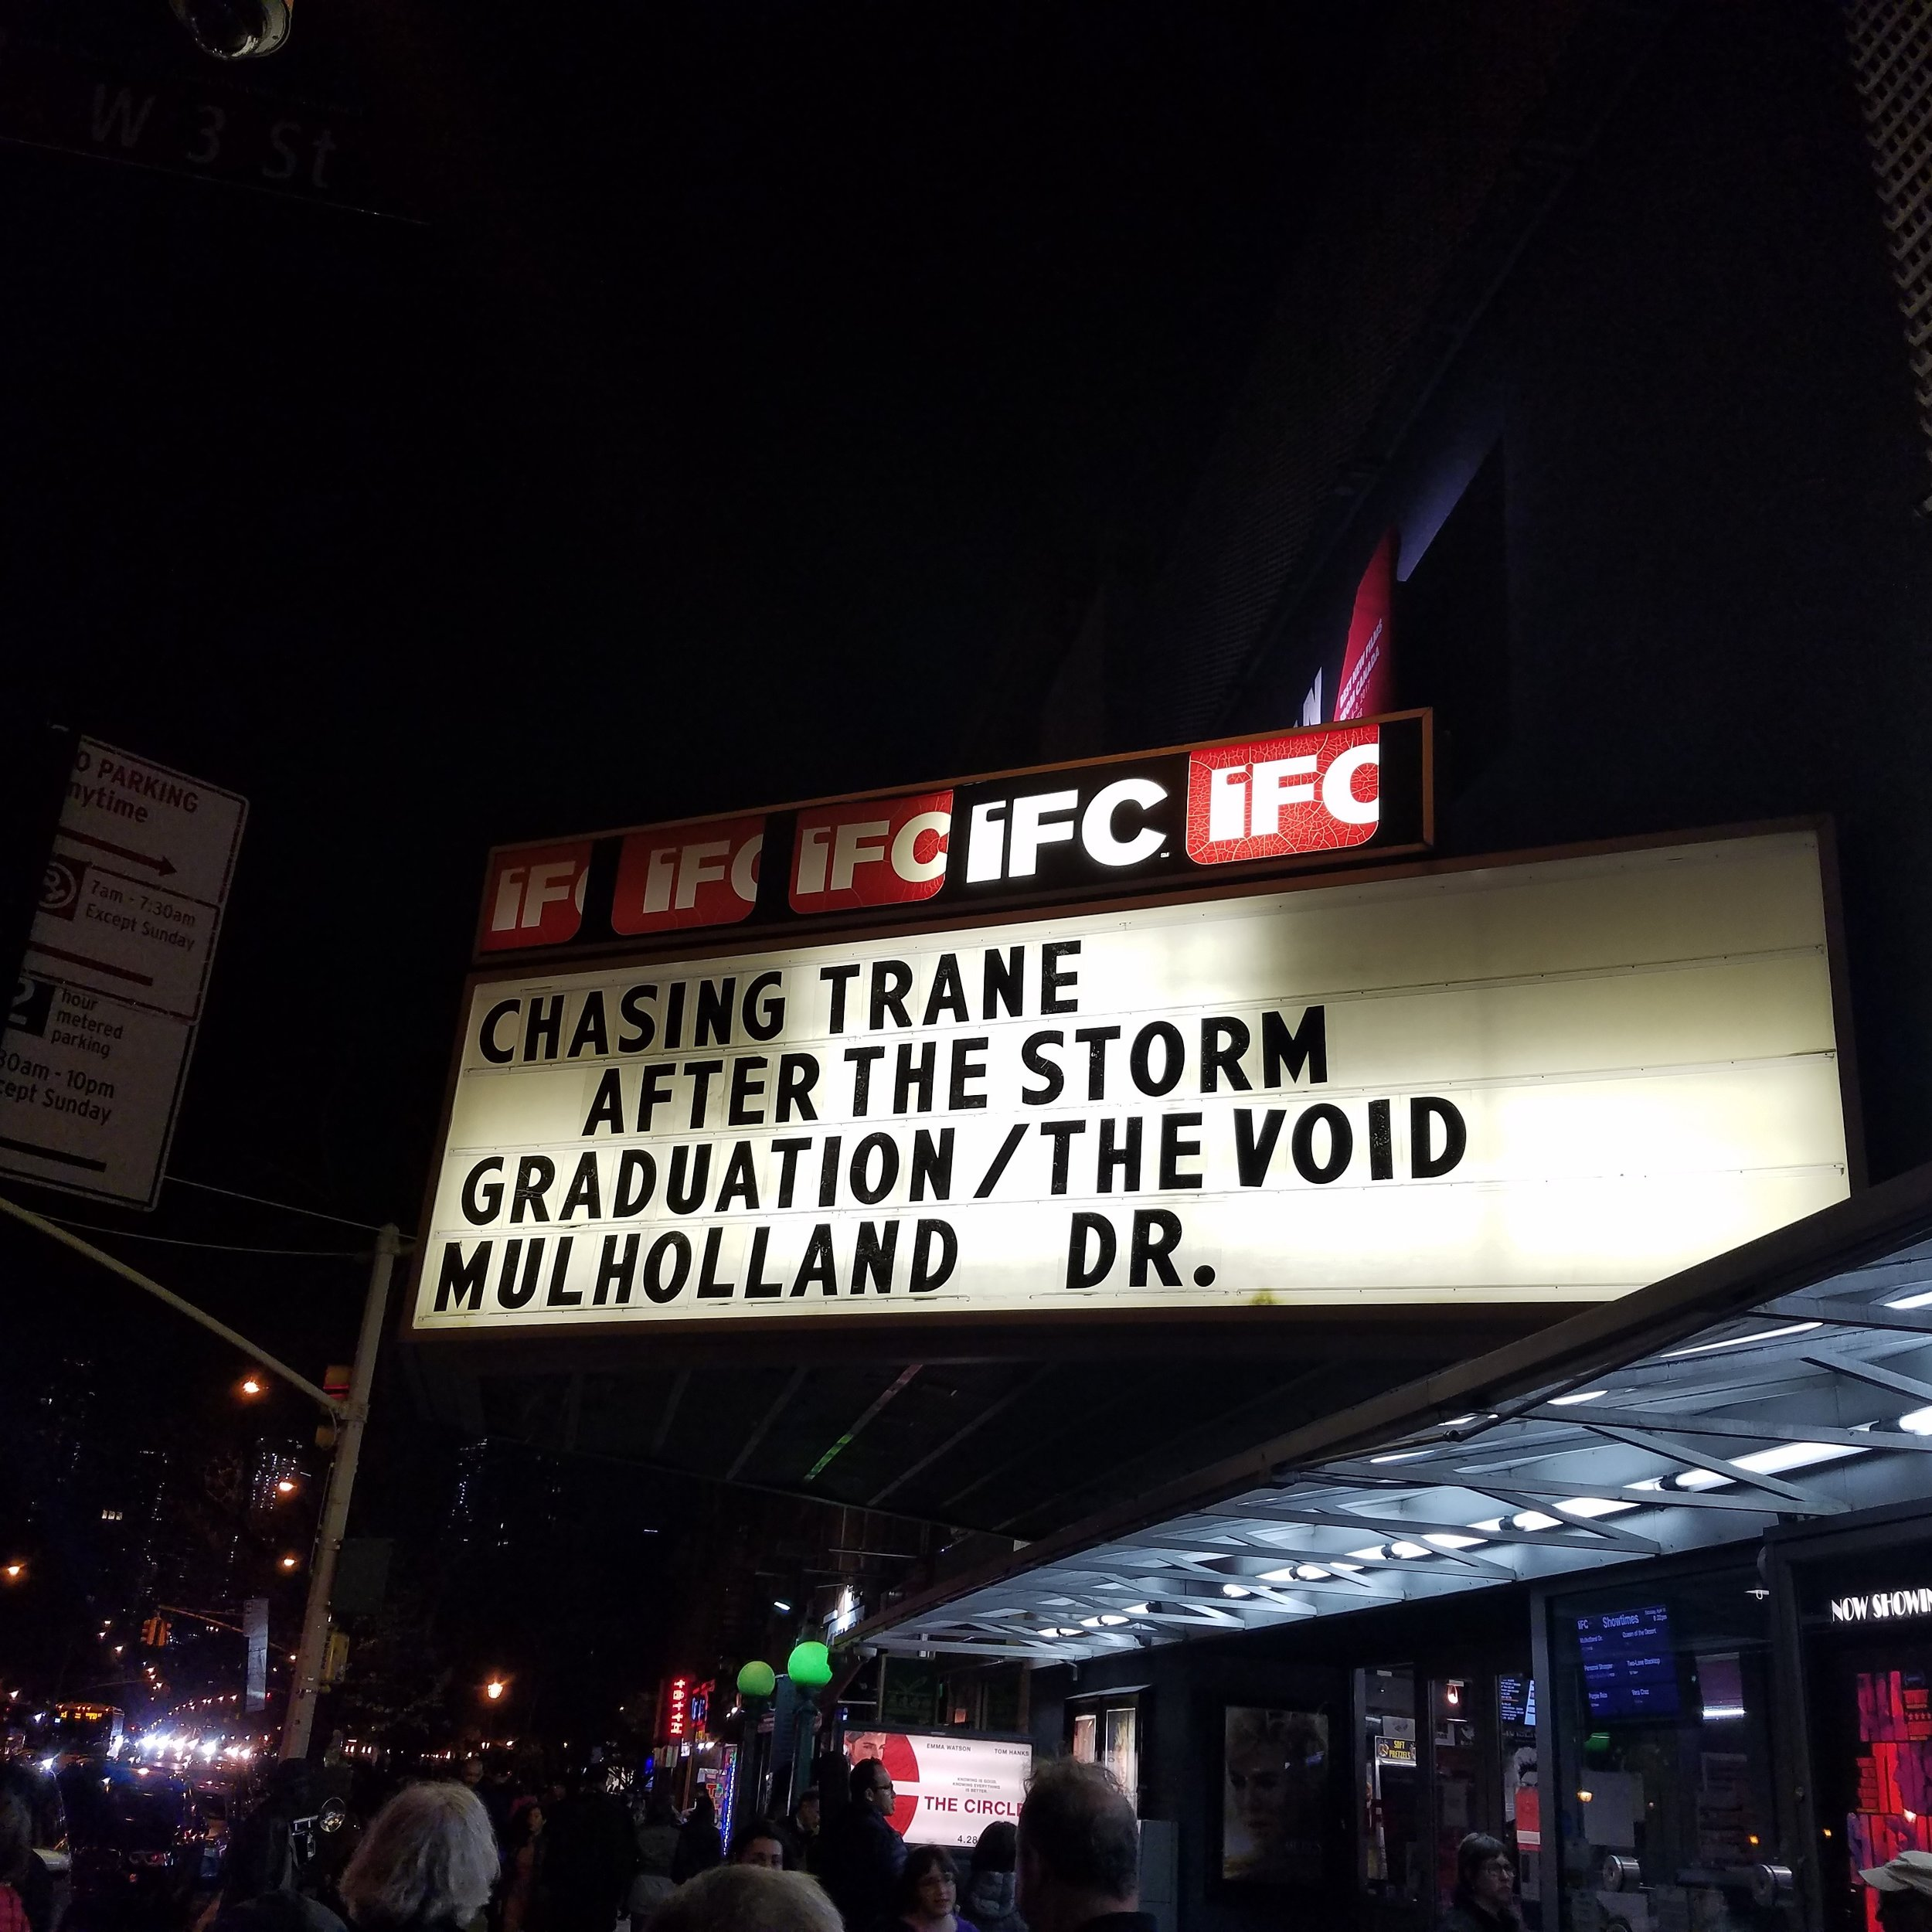 Chasing Trane at the IFC Theatre.